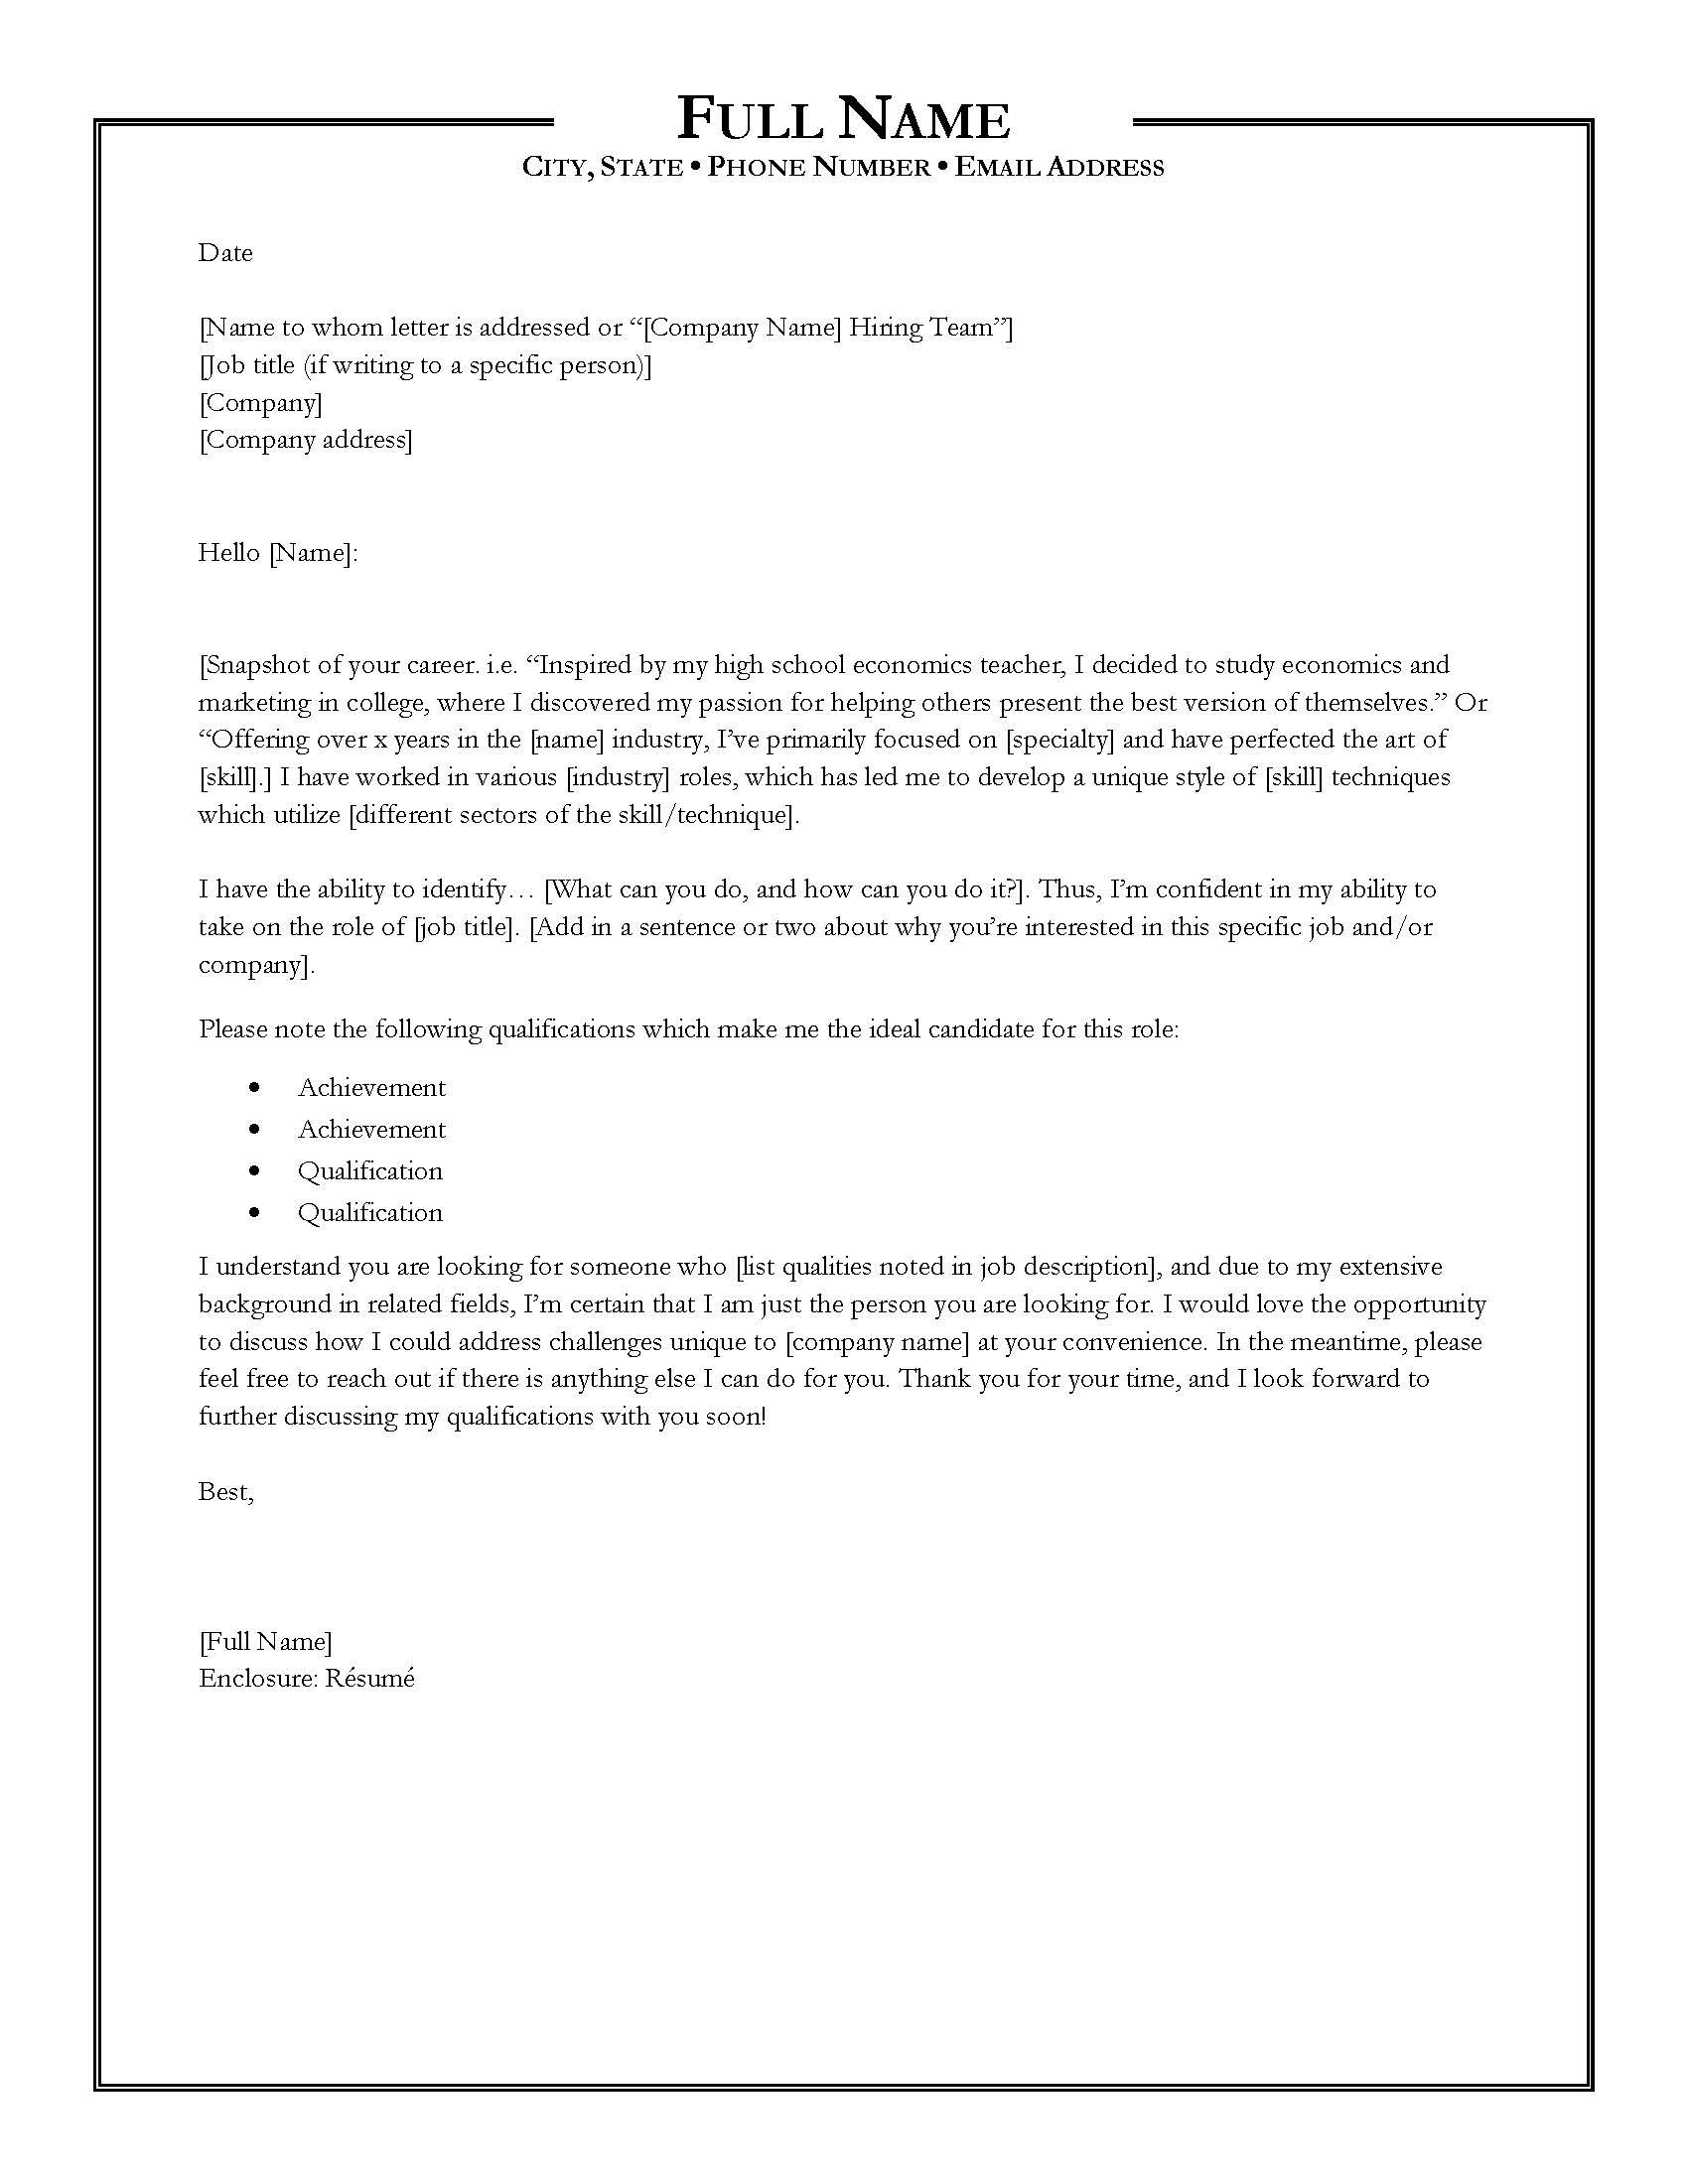 Writing the Perfect Cover Letter Perfect cover letter